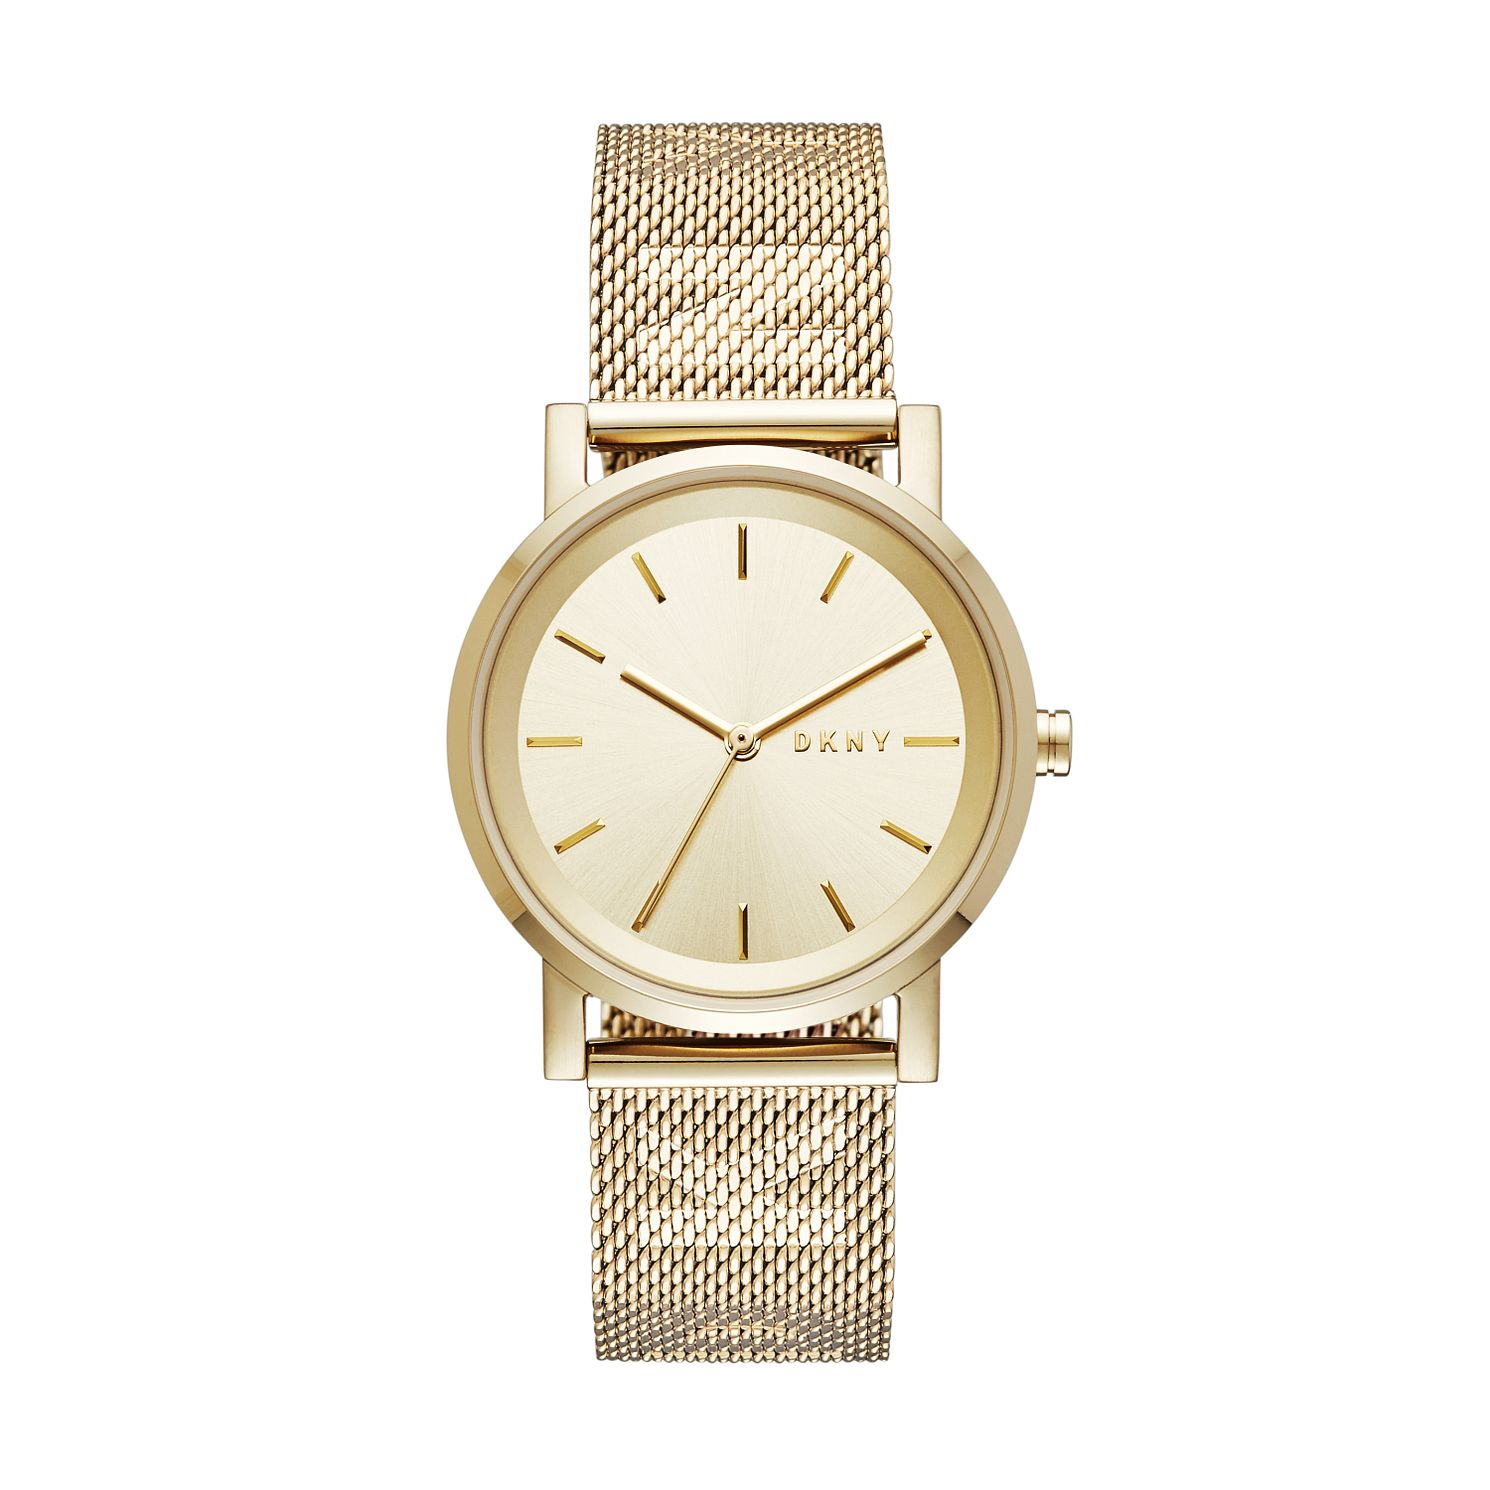 DKNY Soho Ladies' Yellow Gold Tone Mesh Bracelet Watch - Product number 2328259